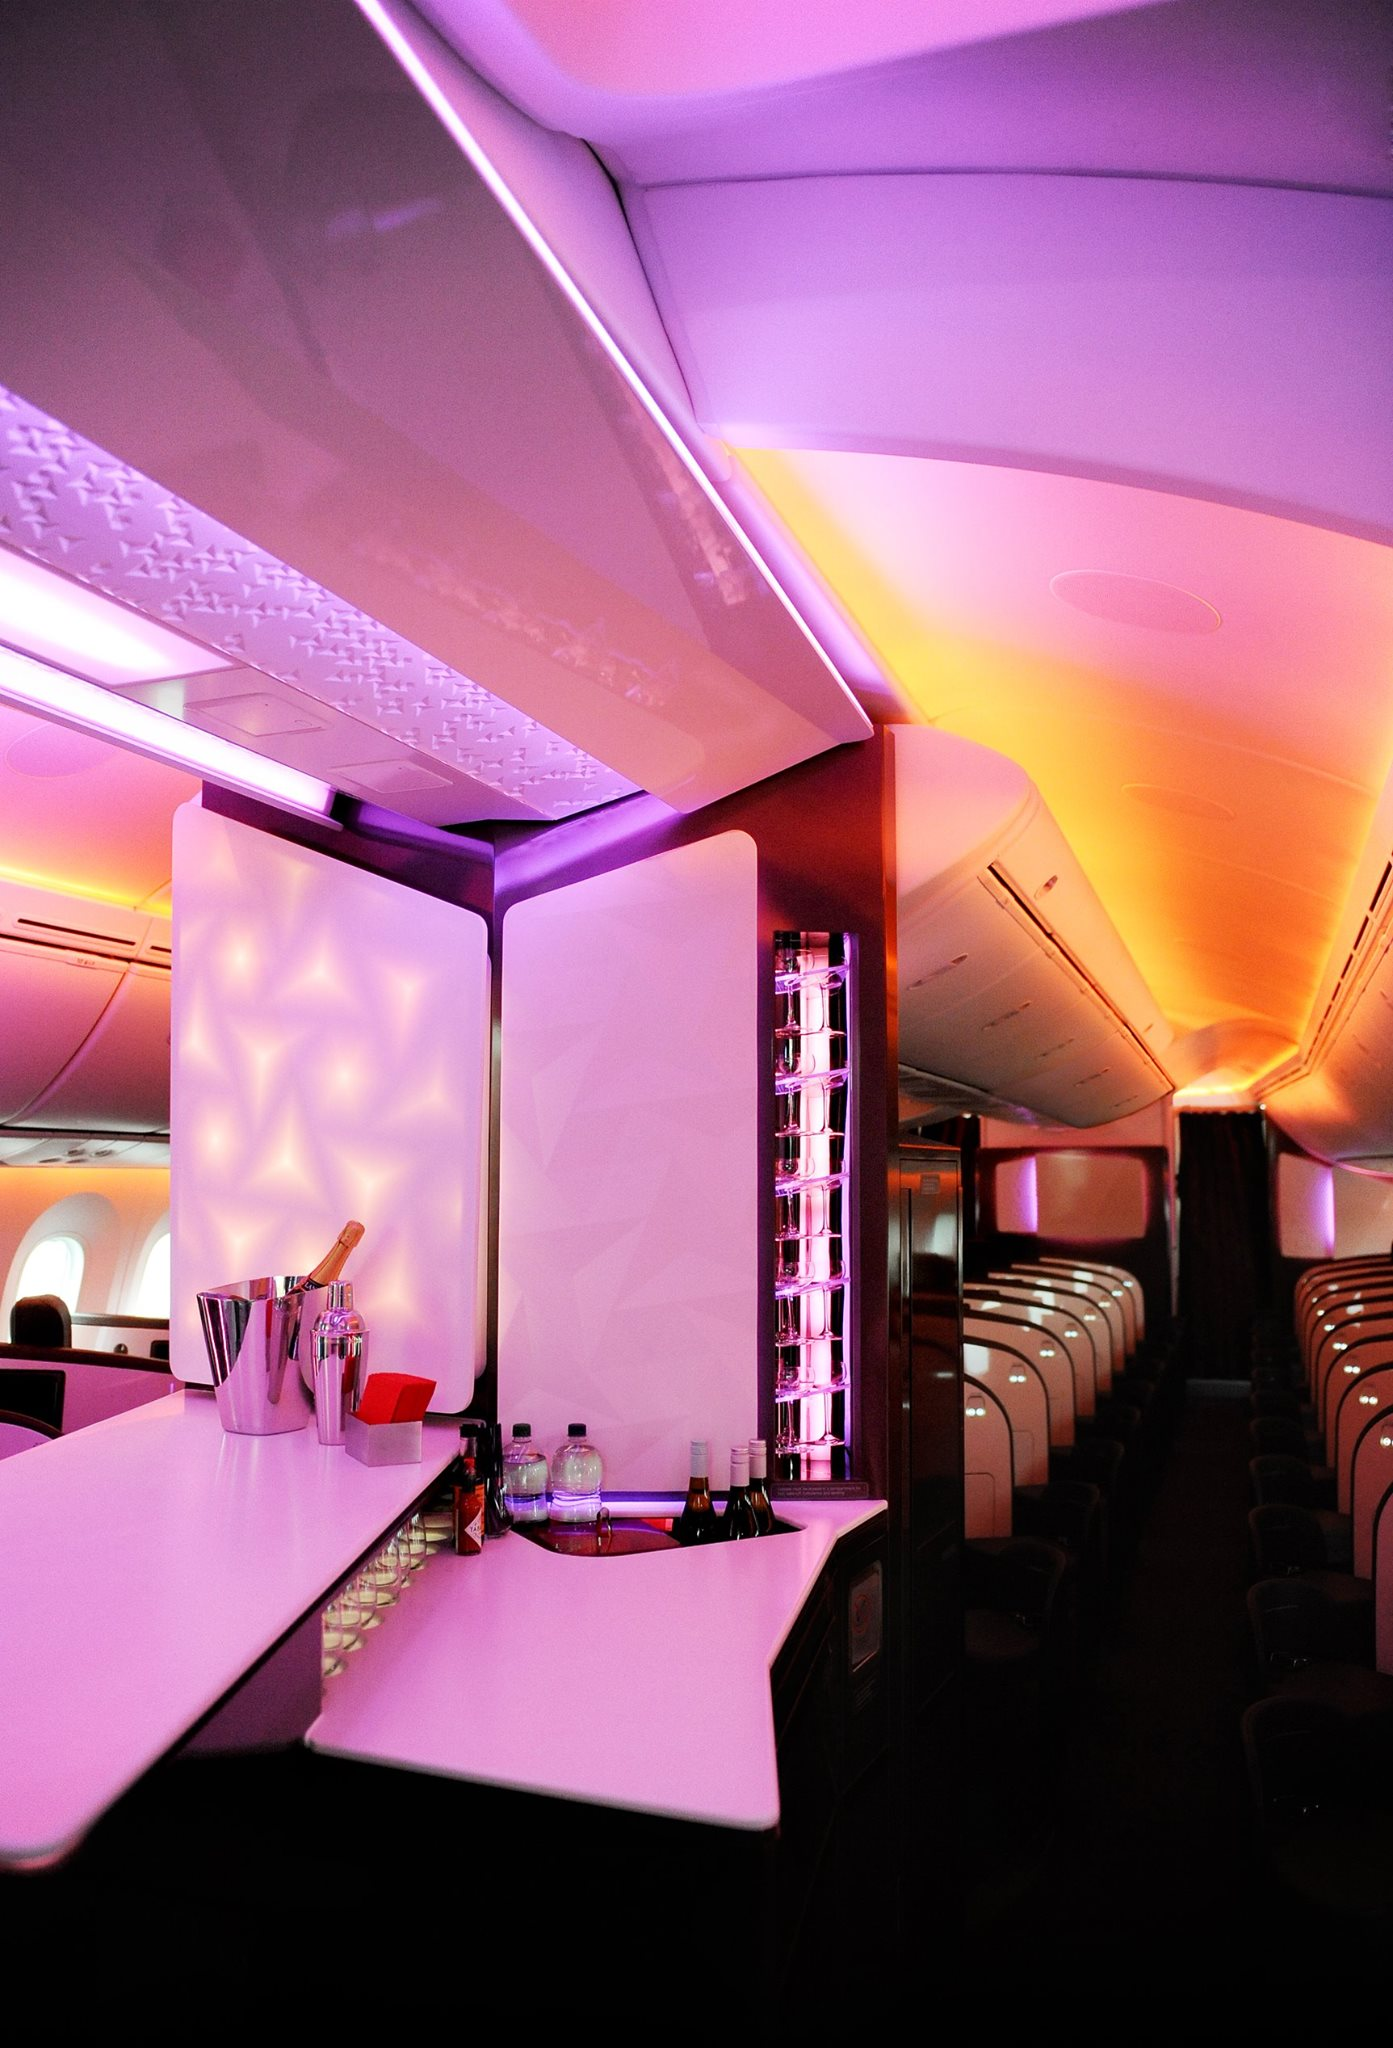 Interior Design Classes Seattle By Virgin Atlantic To London New Route No Mas Coach